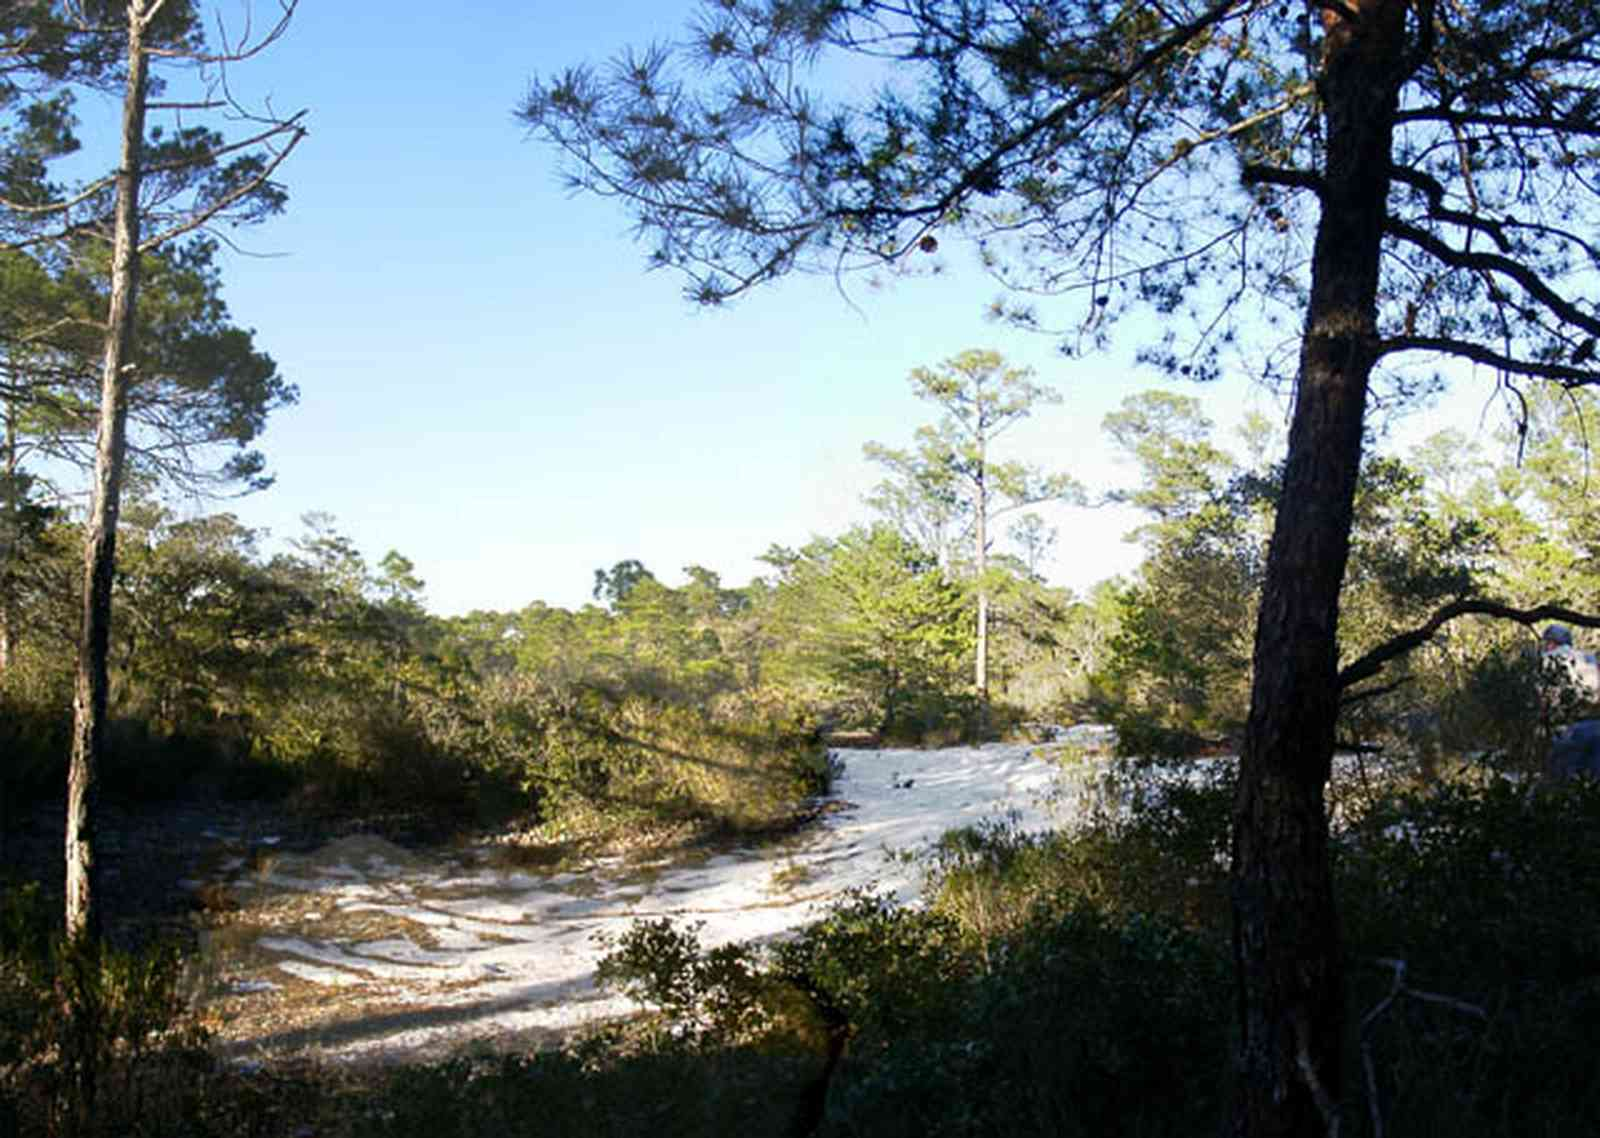 Perdido-Key:-Pine-Barrens_00c.jpg:  sand scrub pine forest, sand dunes, key, peninsula, short-leaf pine trees, xeric sandy forest